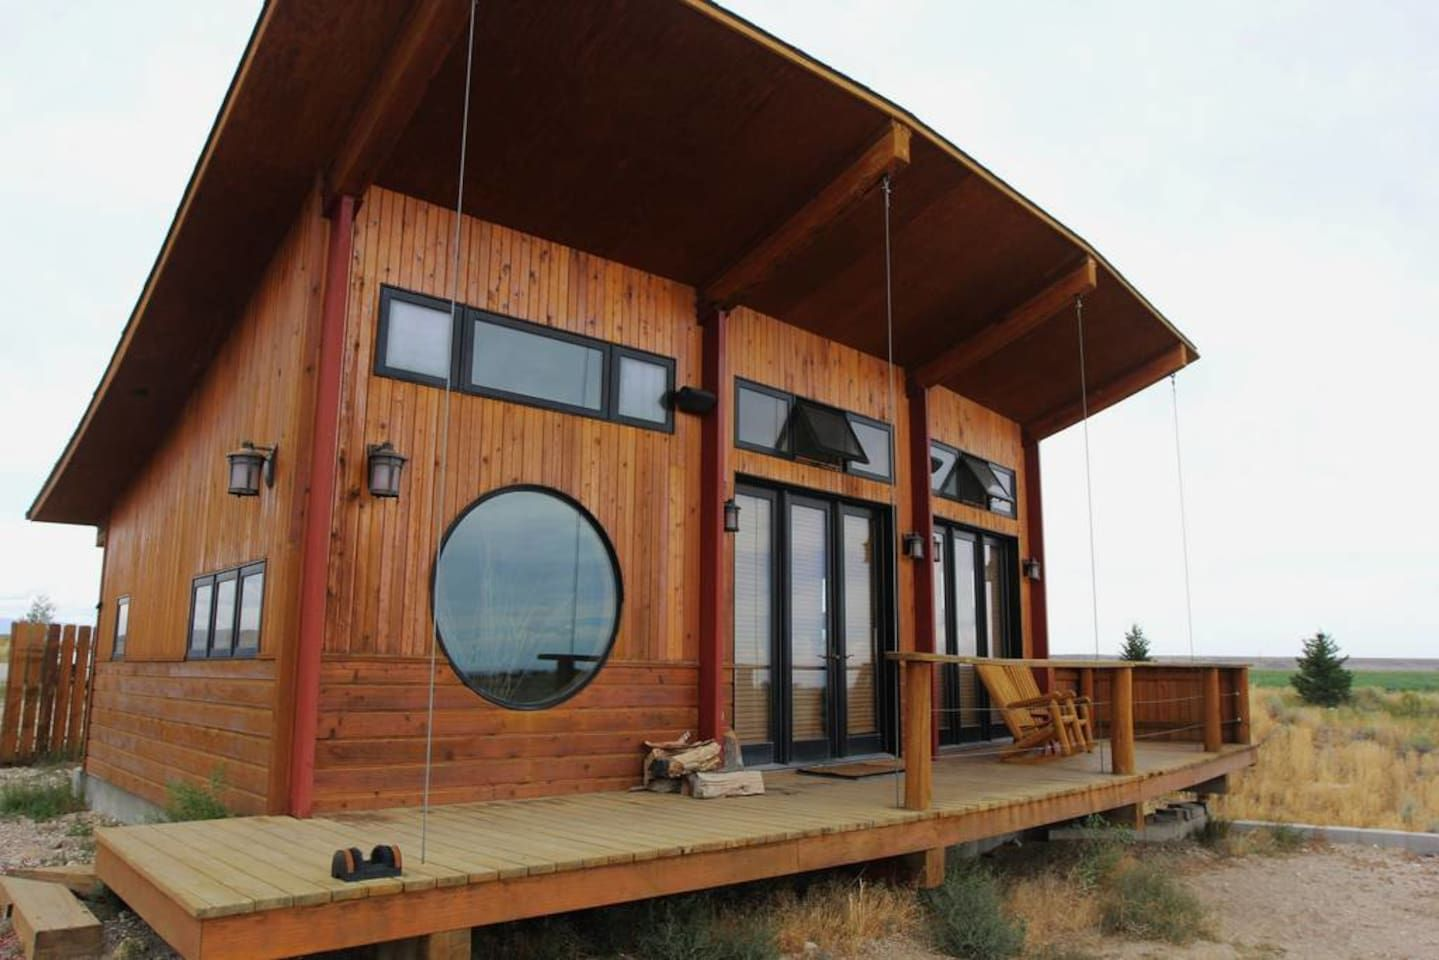 The Coolest Airbnb in Every State Airbnb usa, Houseboat